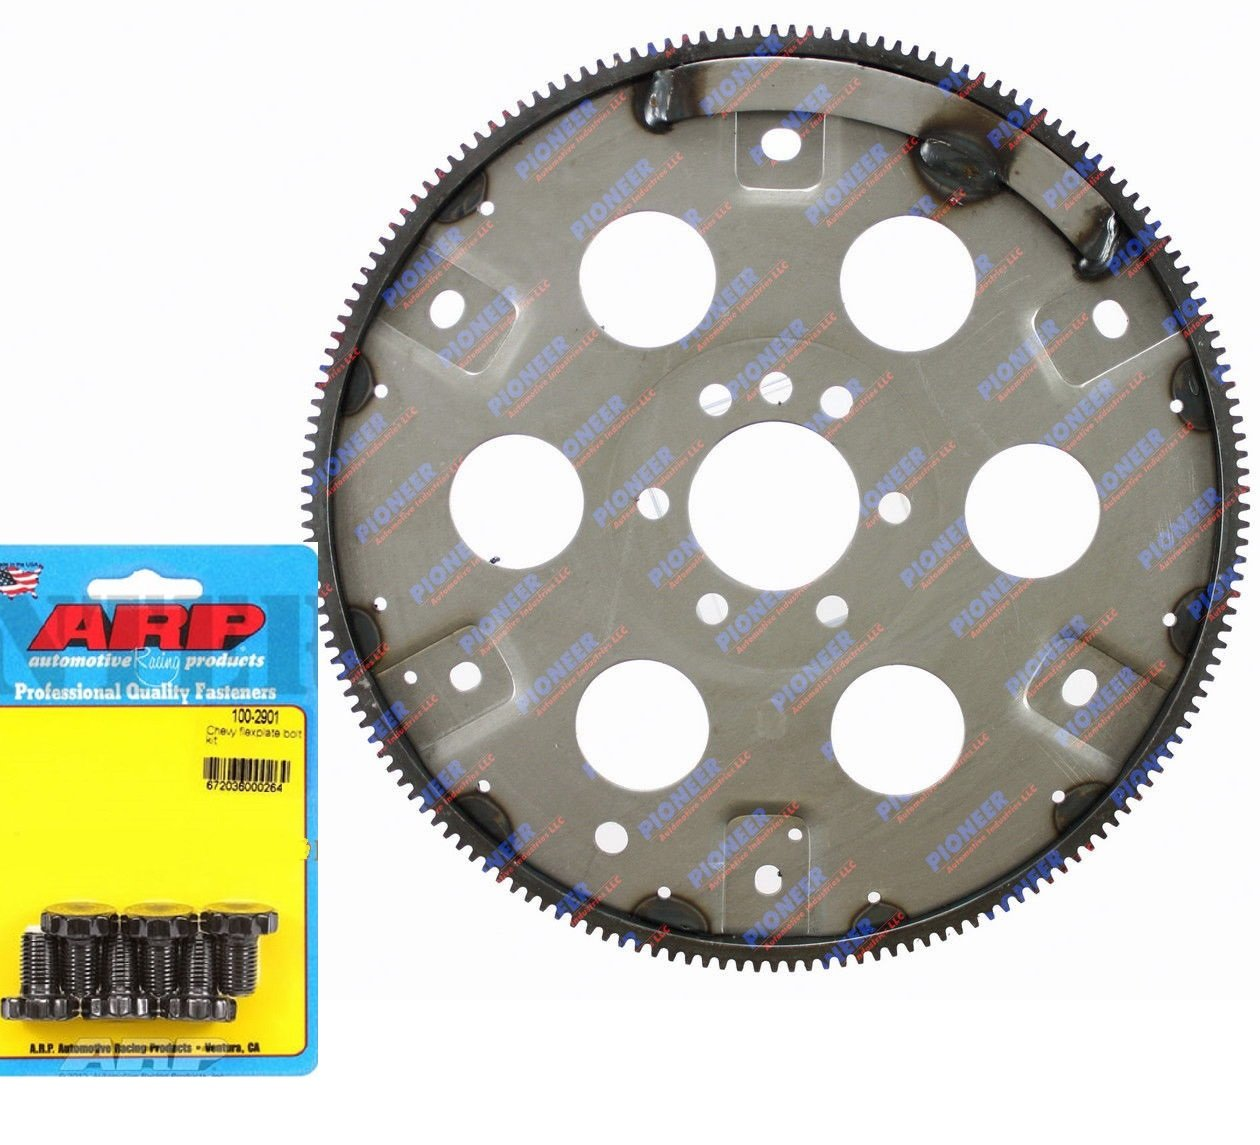 PIONEER Auto Trans 168 tooth Flexplate/Flywheel & New BOLTS for Chevy BB 454 70-76 EXT